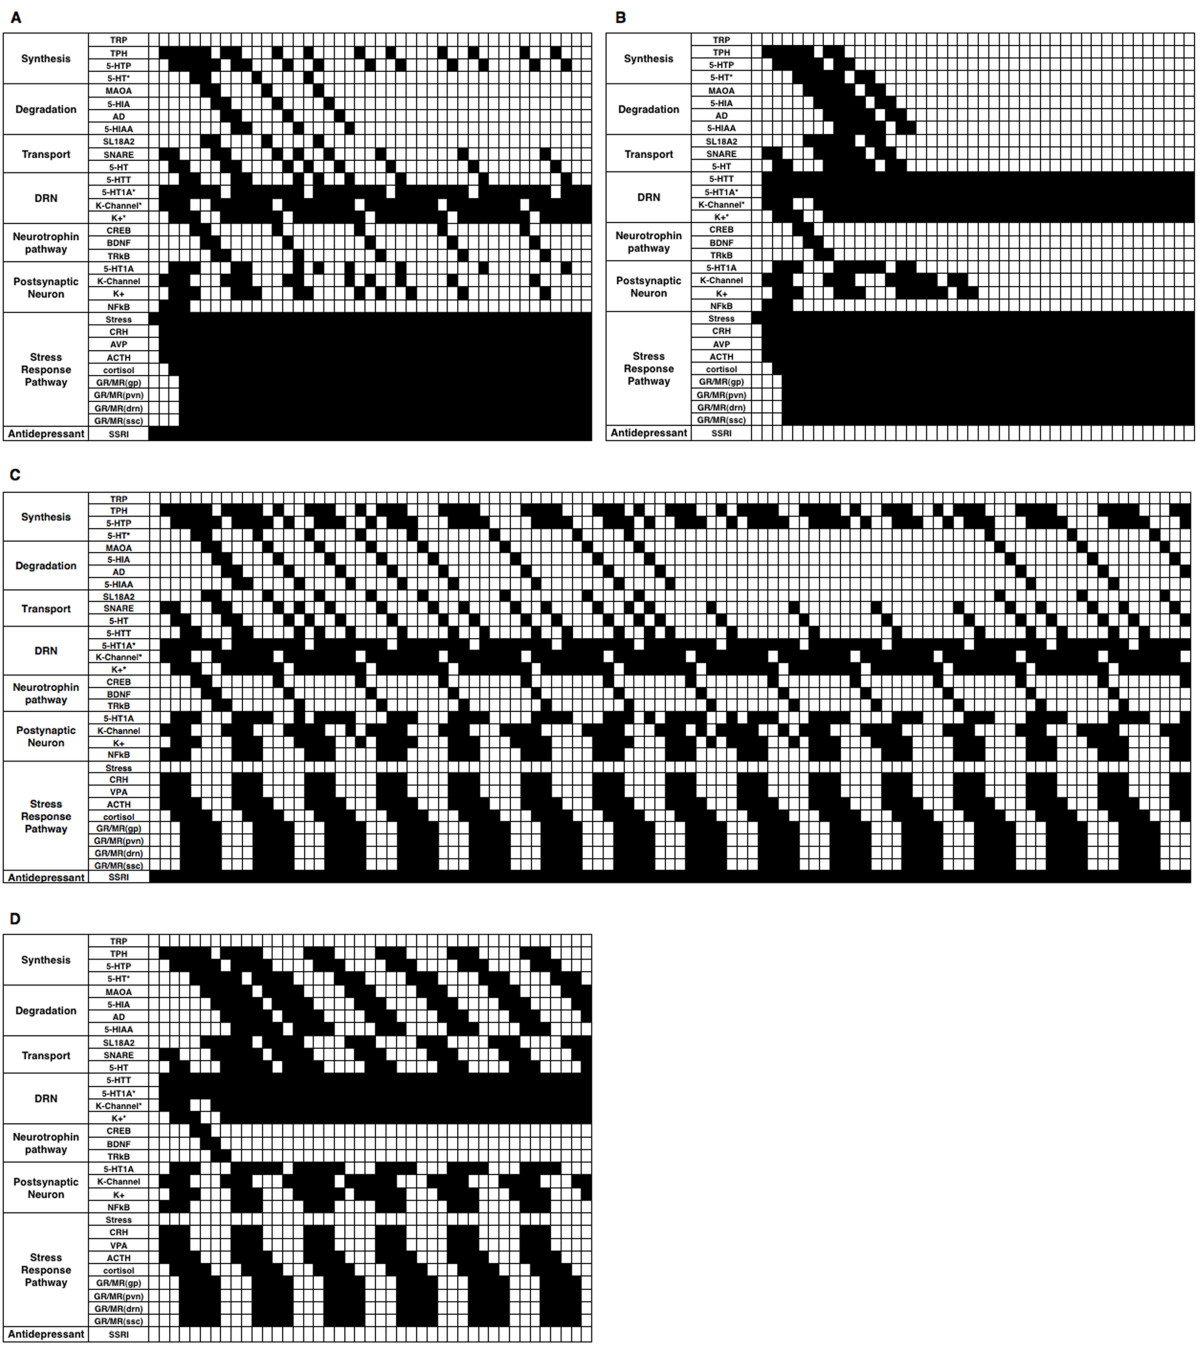 http://static-content.springer.com/image/art%3A10.1186%2F1742-4682-10-59/MediaObjects/12976_2013_Article_435_Fig4_HTML.jpg